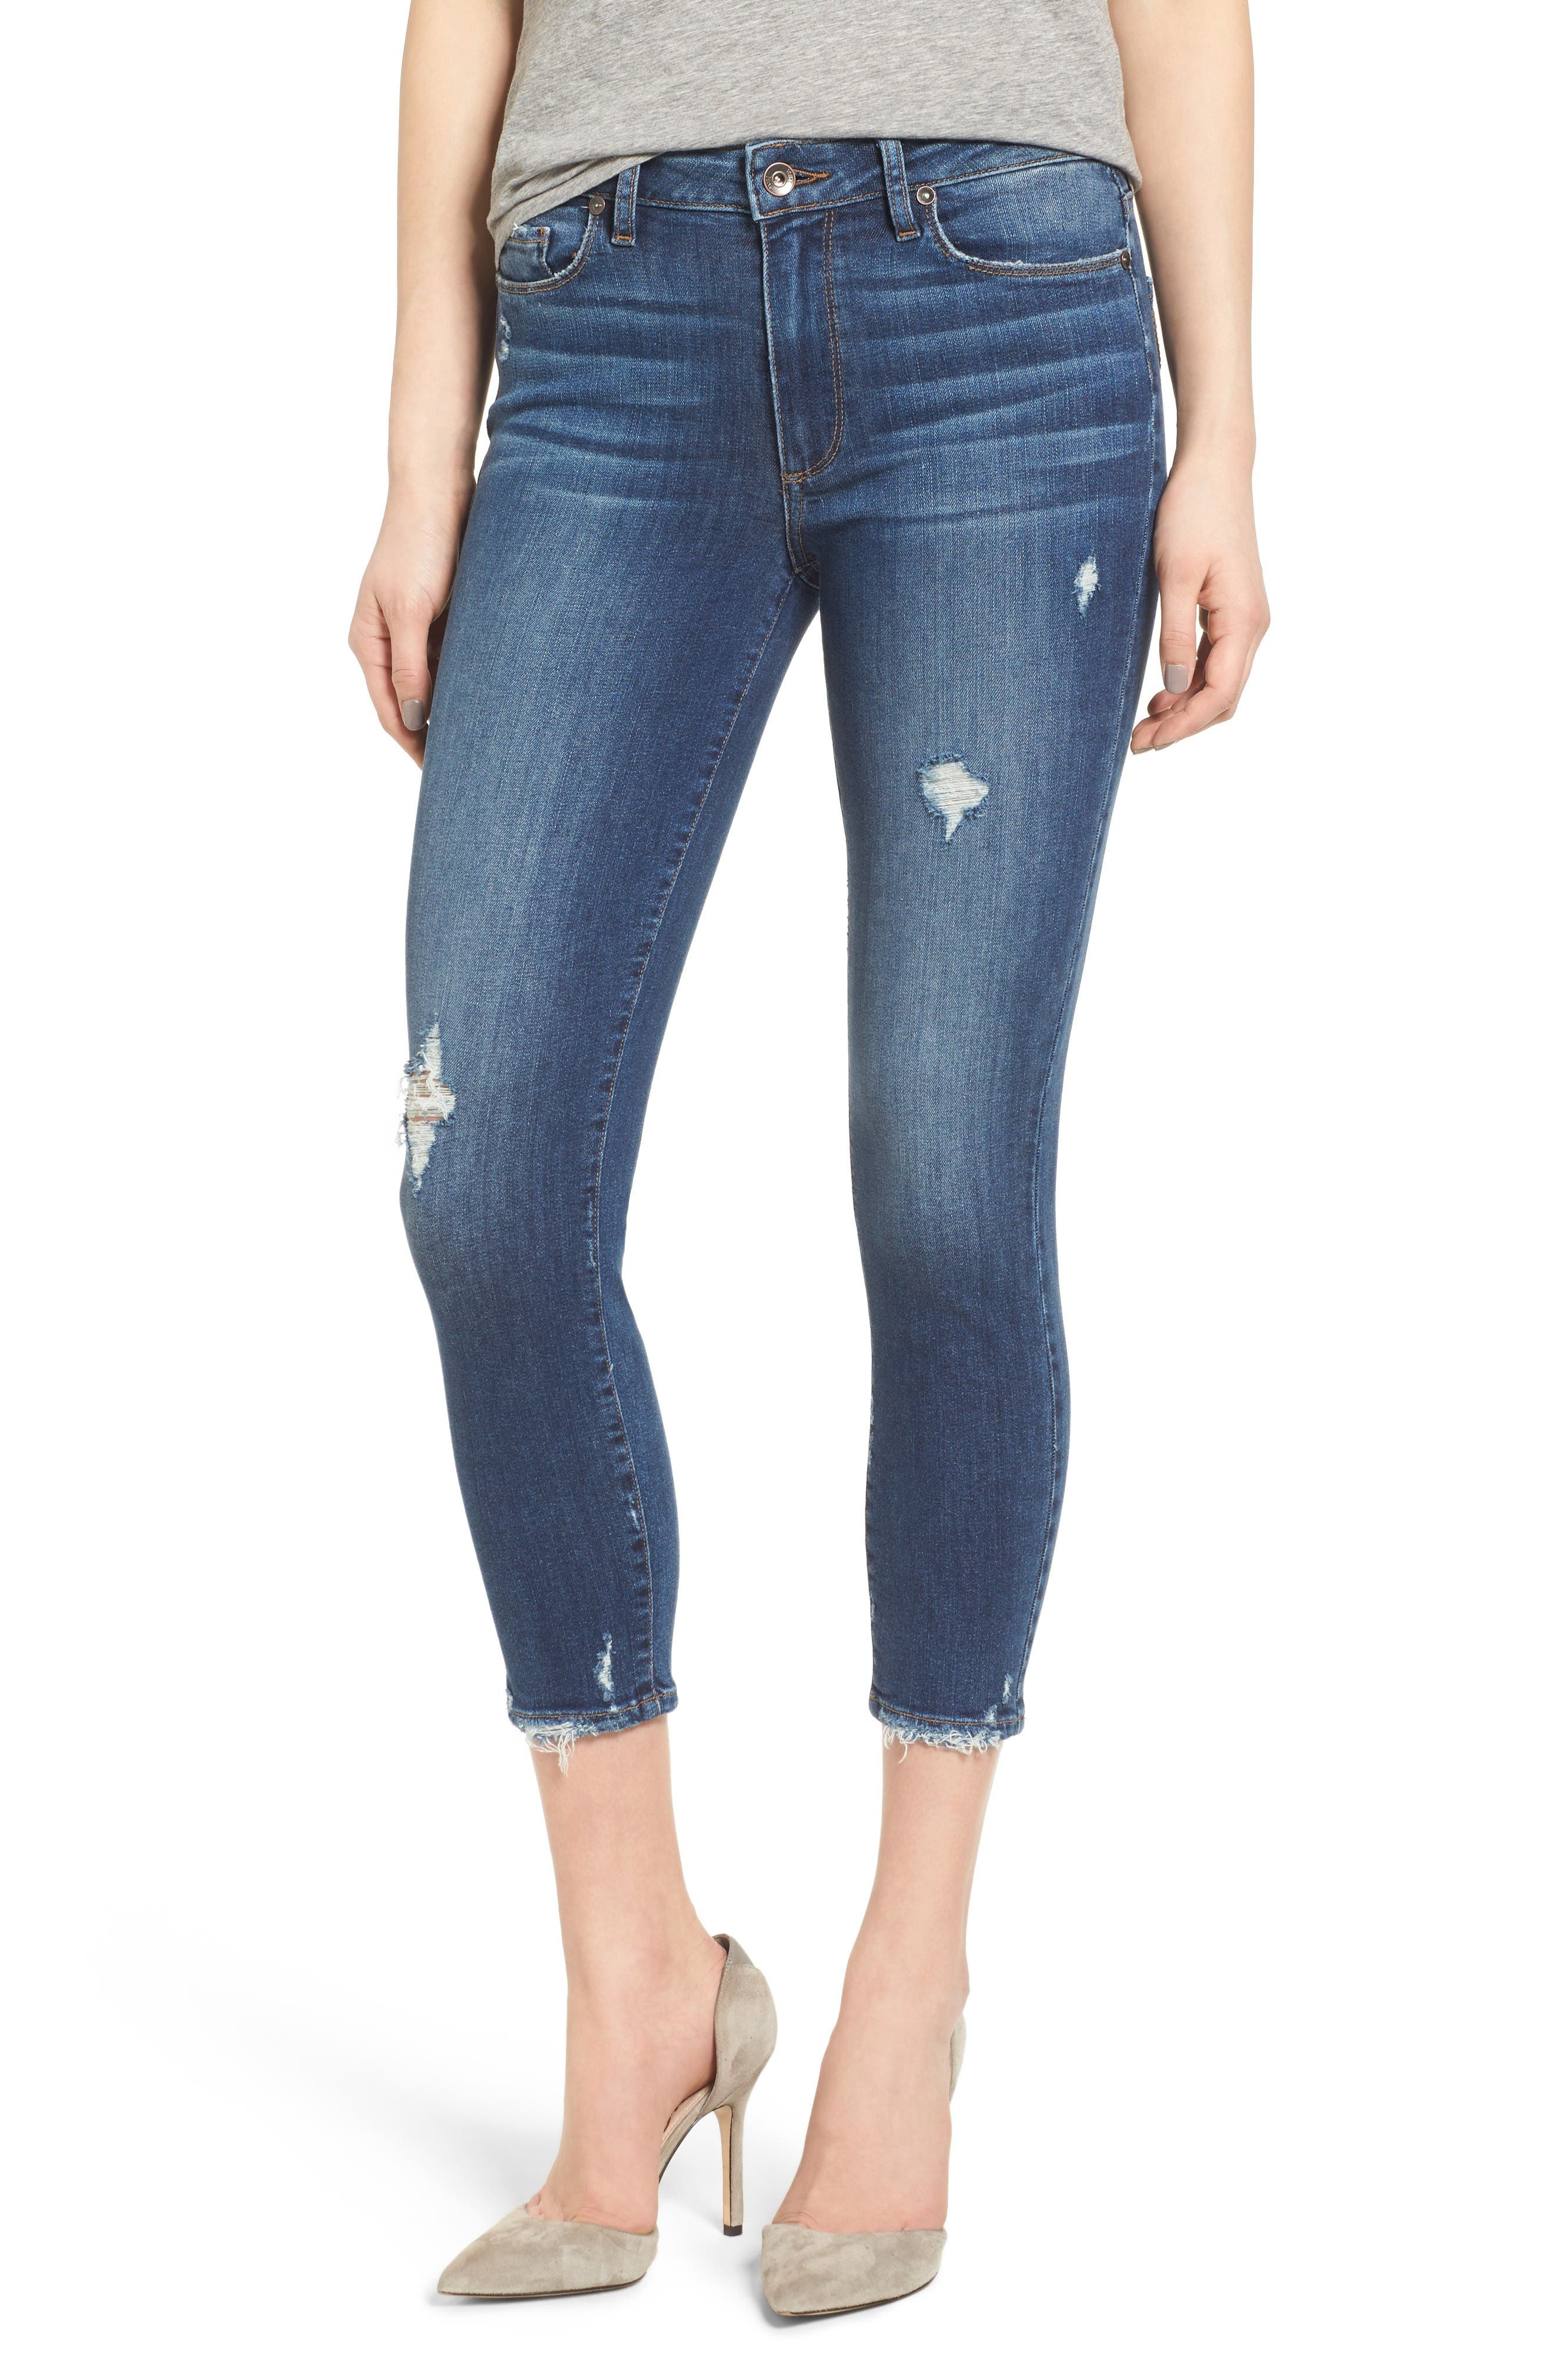 Transcend - Hoxton High Waist Crop Skinny Jeans,                             Main thumbnail 1, color,                             Nora Destructed